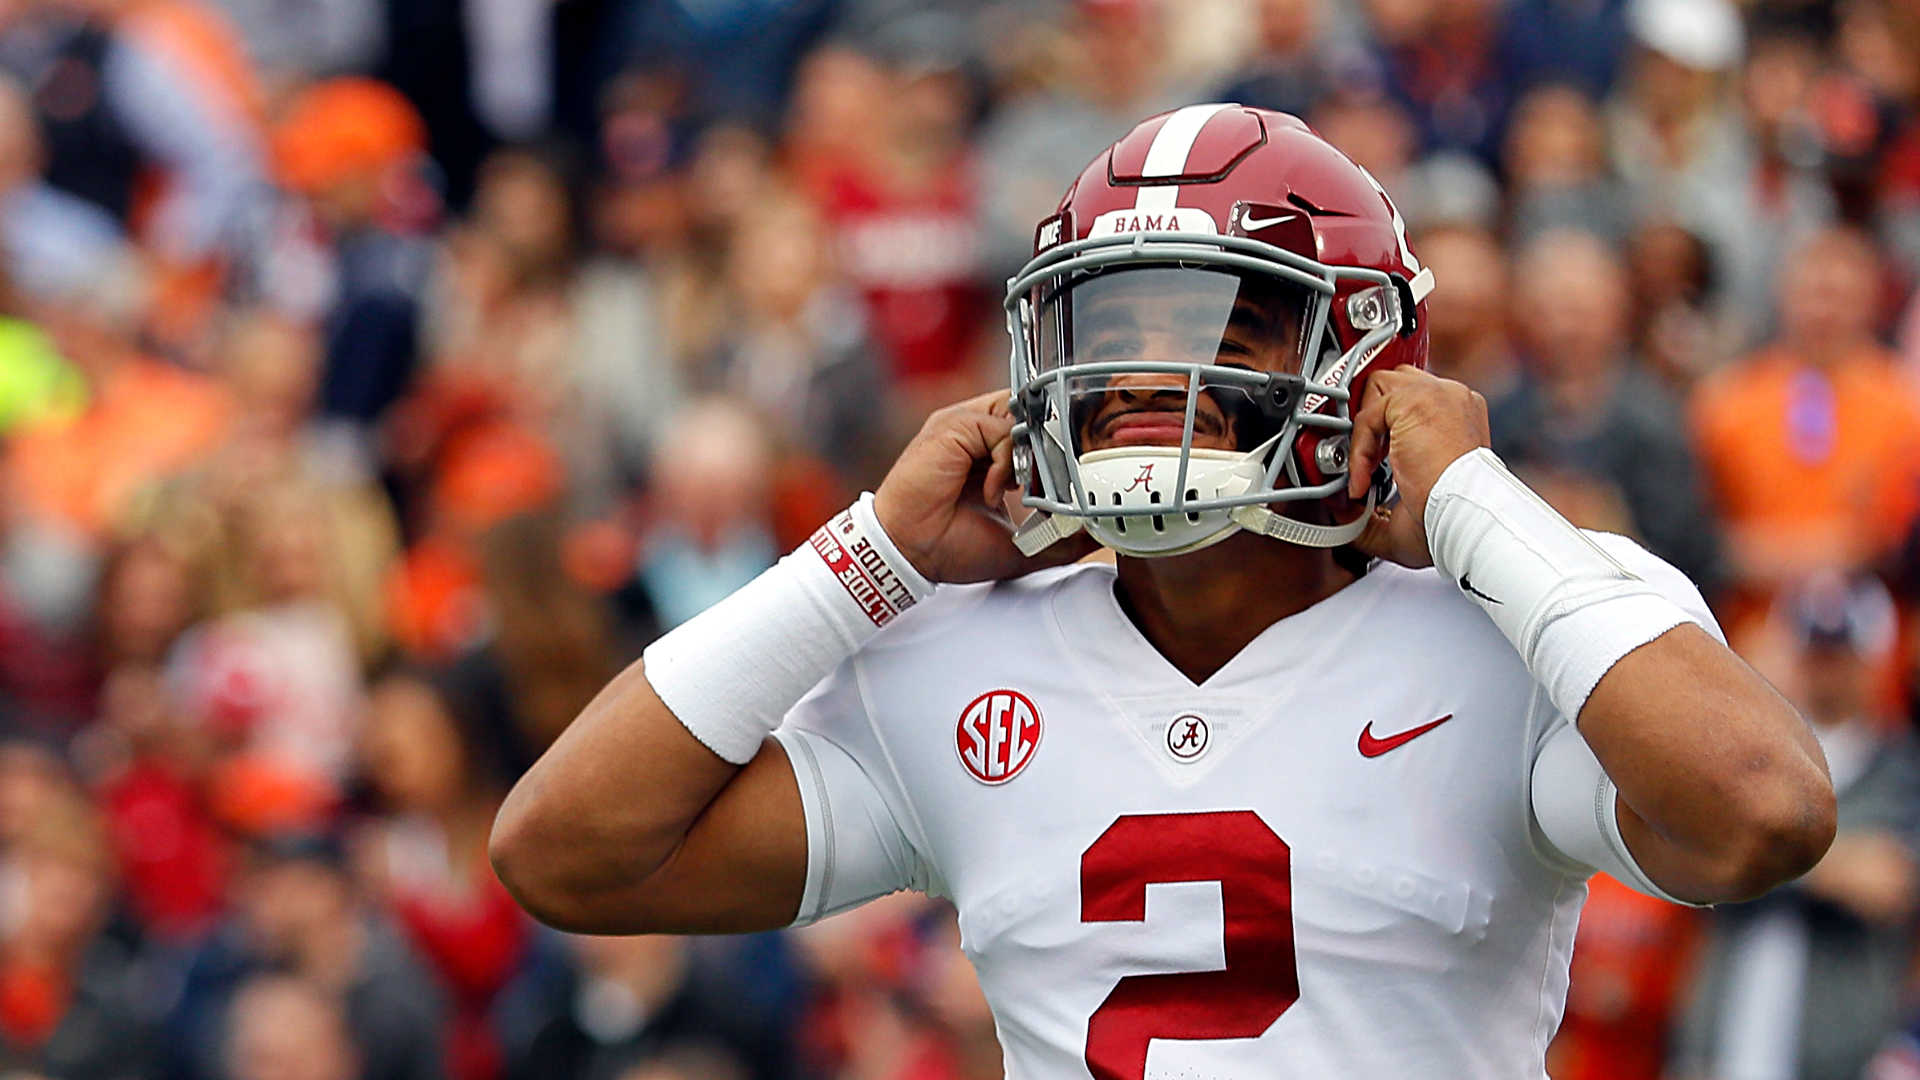 Alabama's Jalen Hurts gets last laugh honoring bet against Charles Barkley